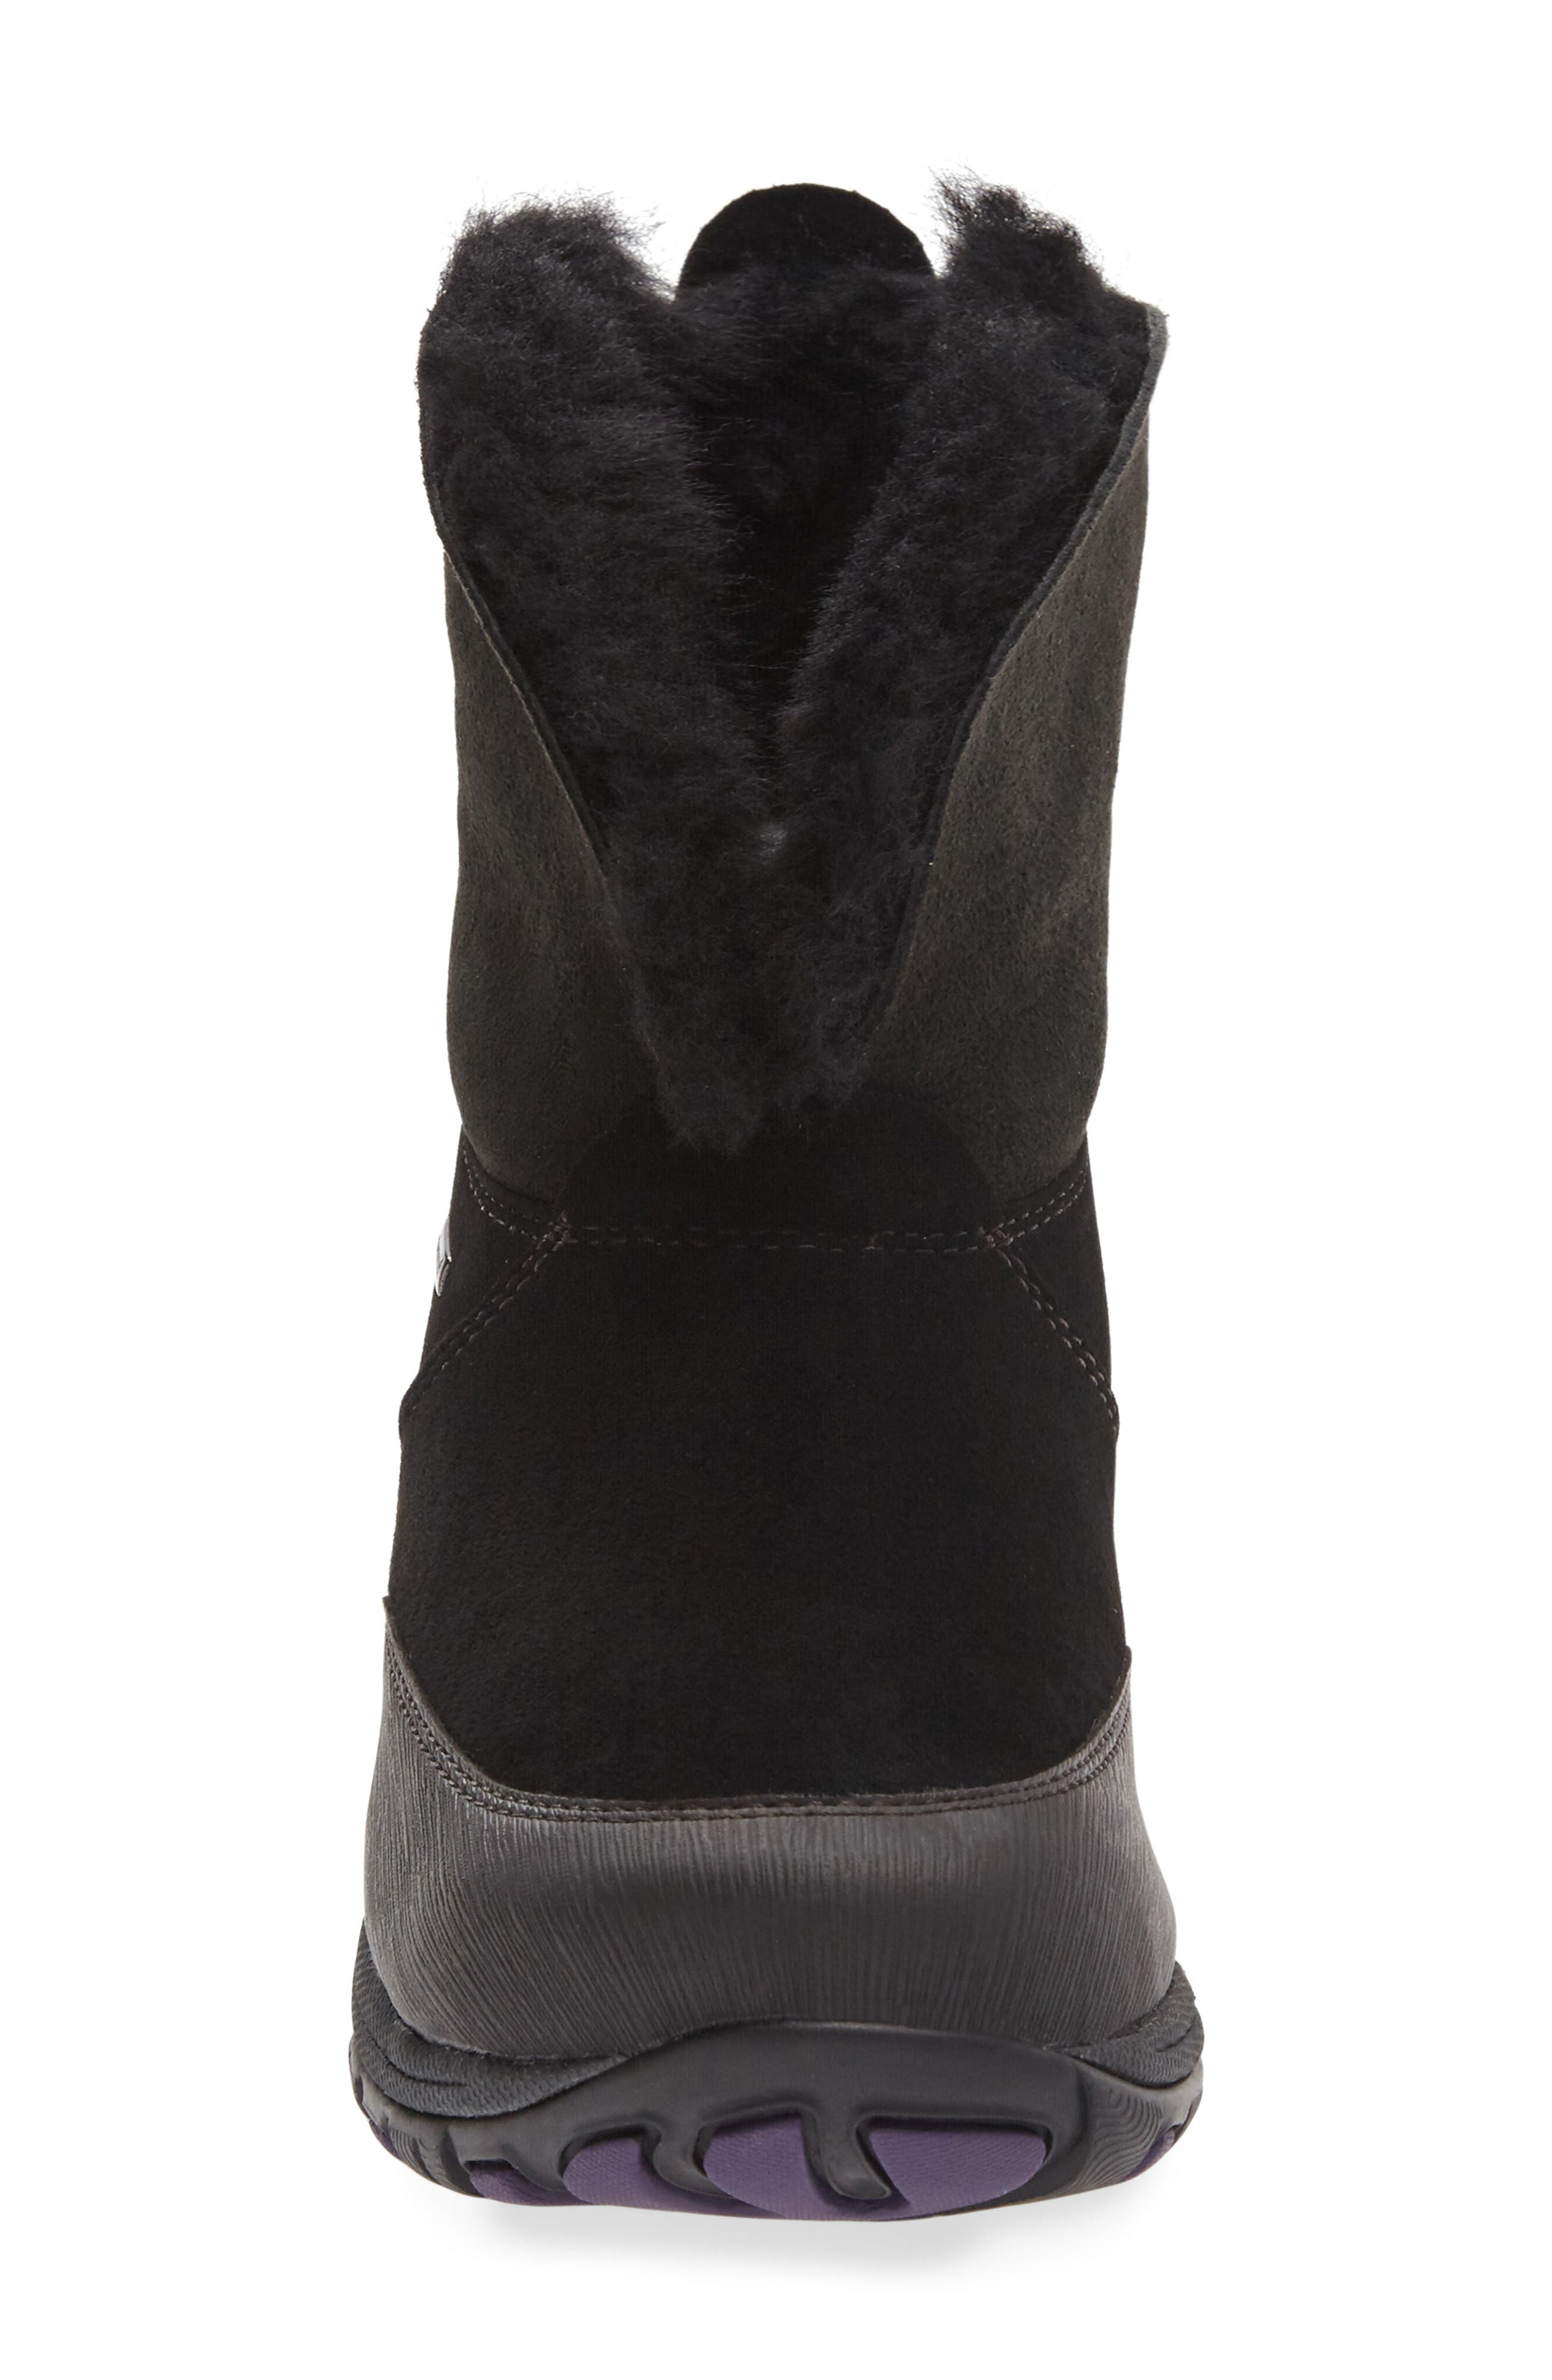 Priscilla Genuine Shearling Waterproof Bootie,                             Alternate thumbnail 4, color,                             001